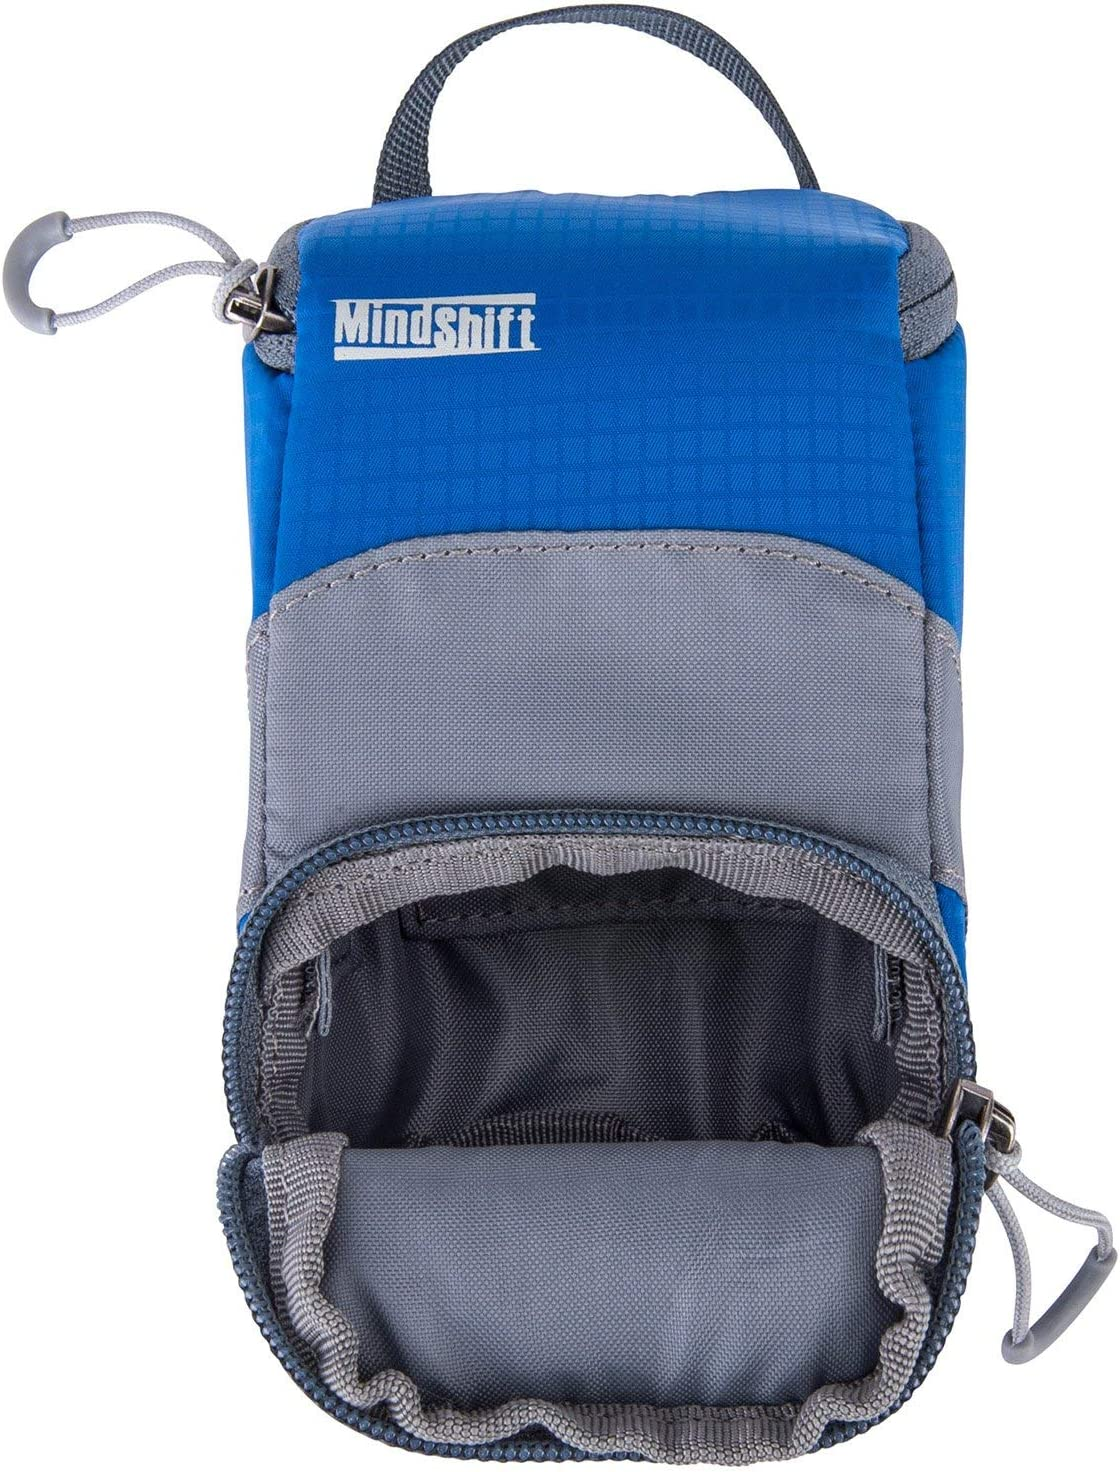 MindShift Gear Gear Pouch 1 Kit Case for Action Cameras /& Accessories